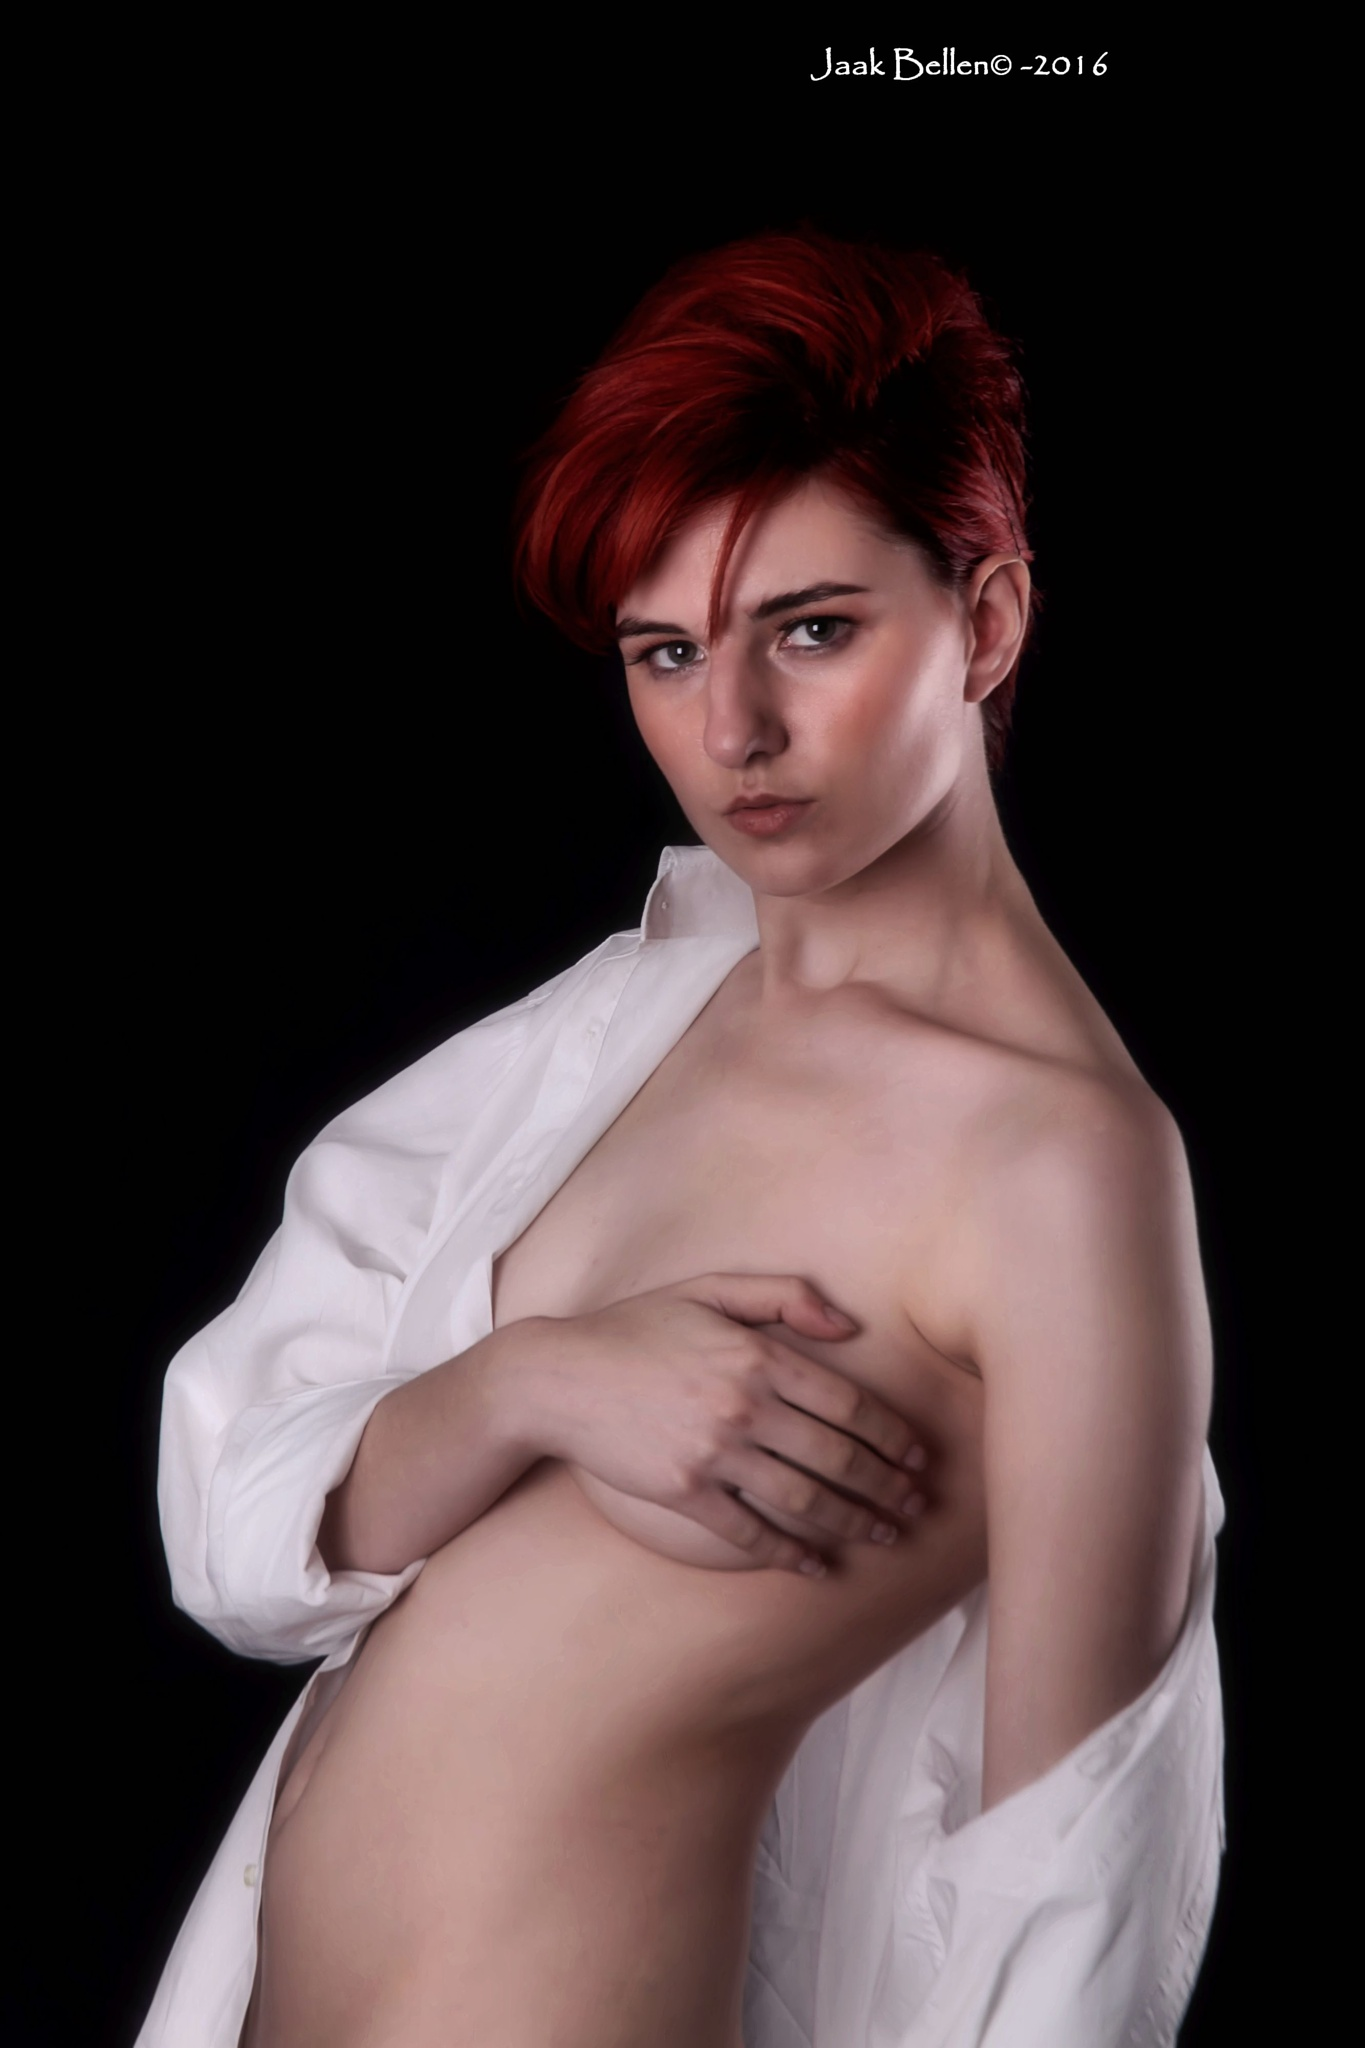 Sara semi nude portrait... by Jaak BELLEN